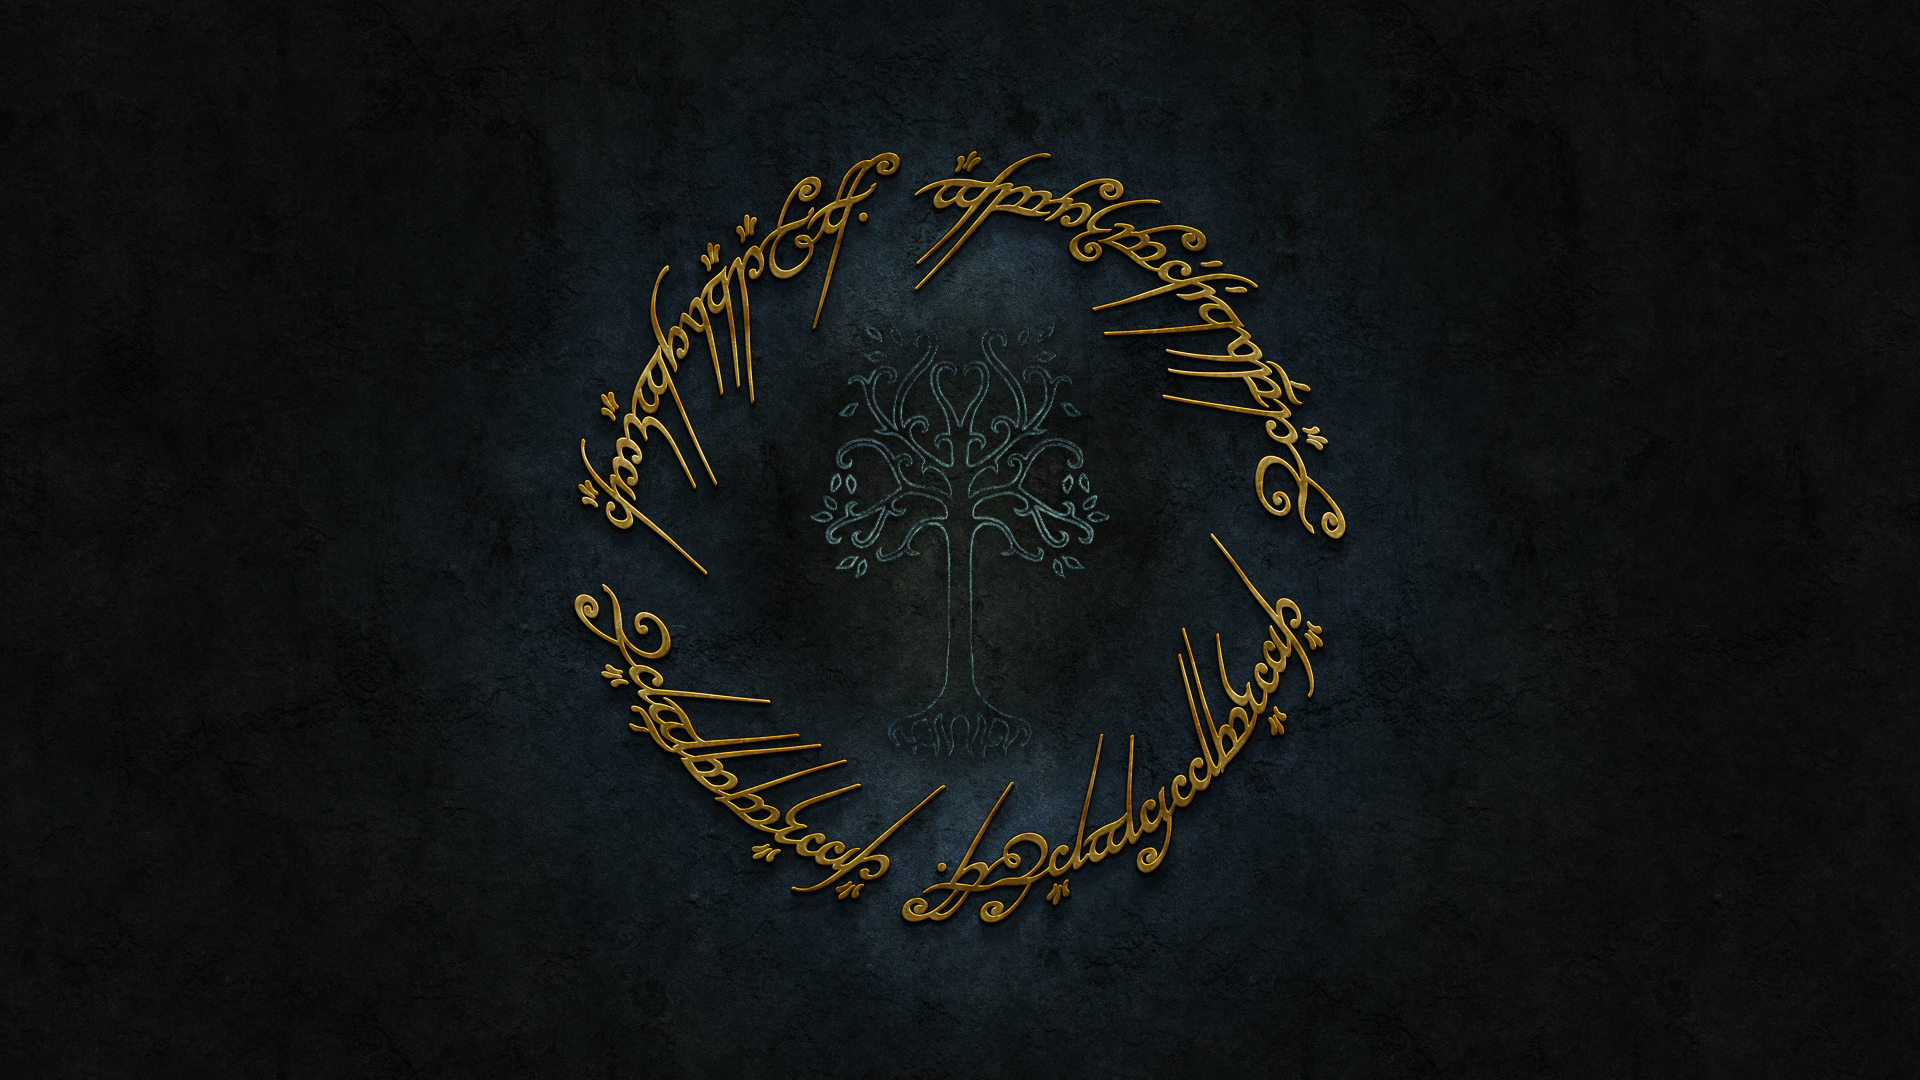 Pics Photos   Lord Of The Rings Wallpaper 1080p 1920x1080